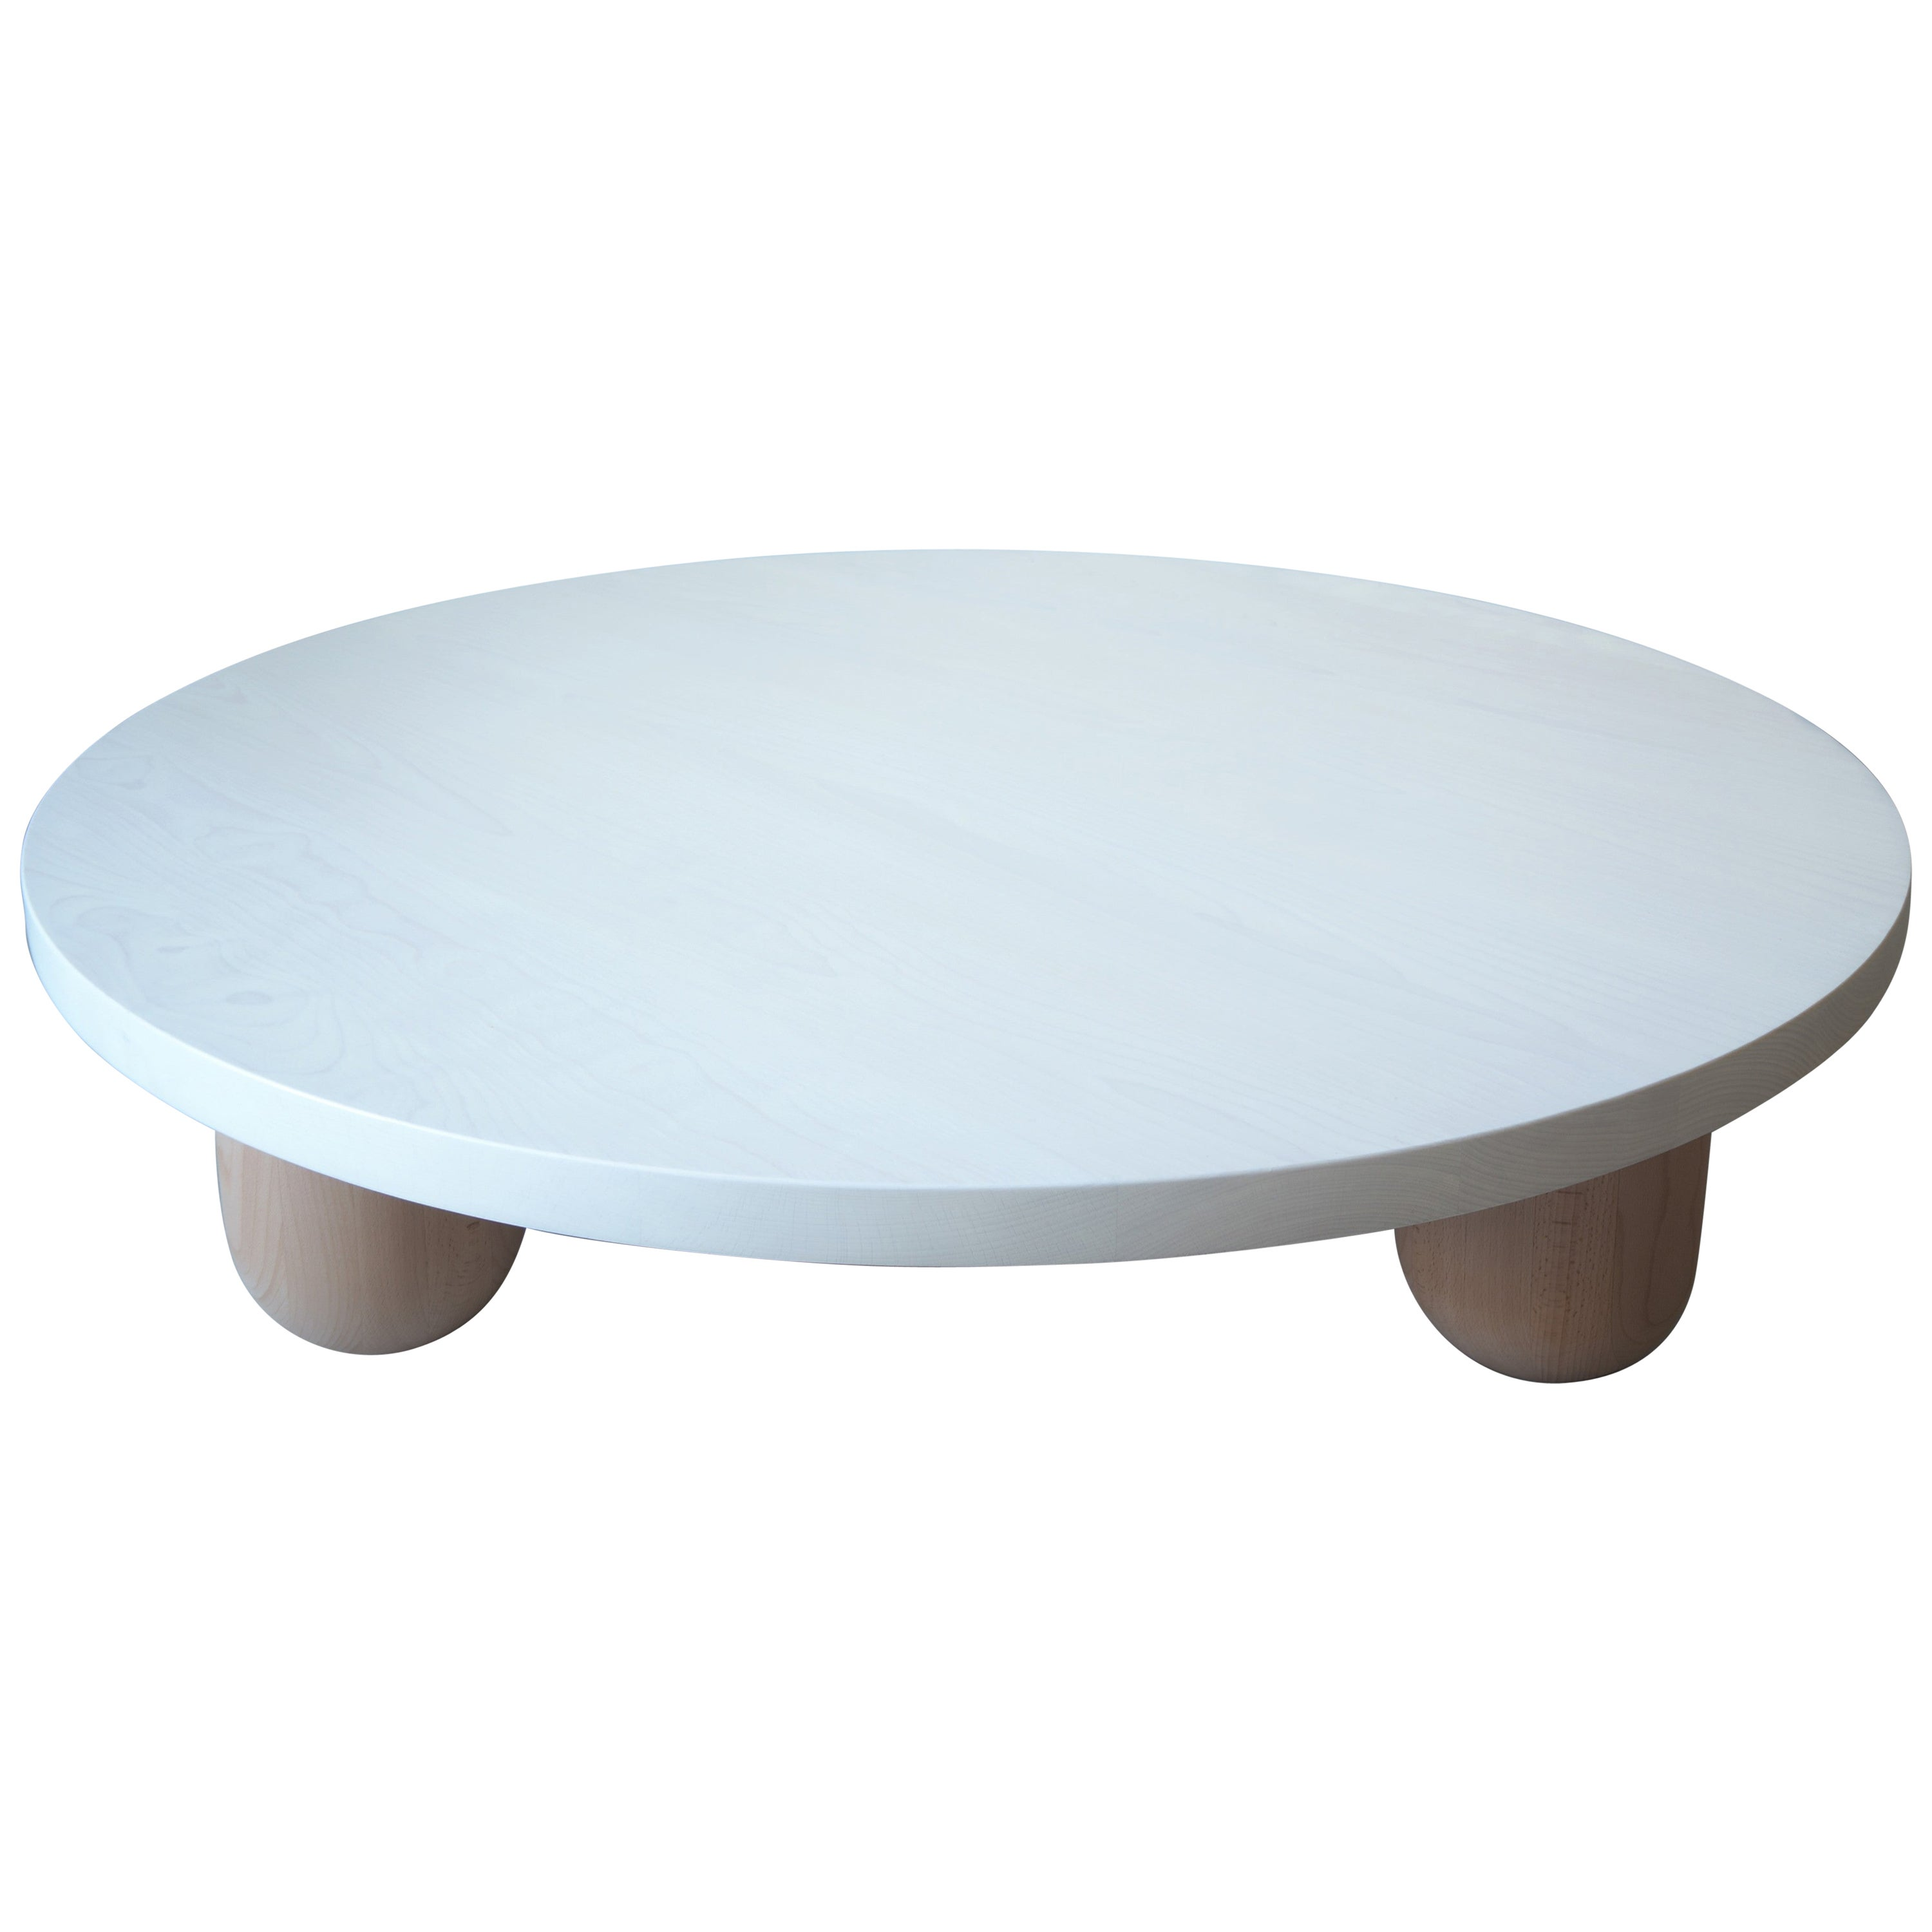 Large Round White Column Coffee Table by MSJ Furniture Studio